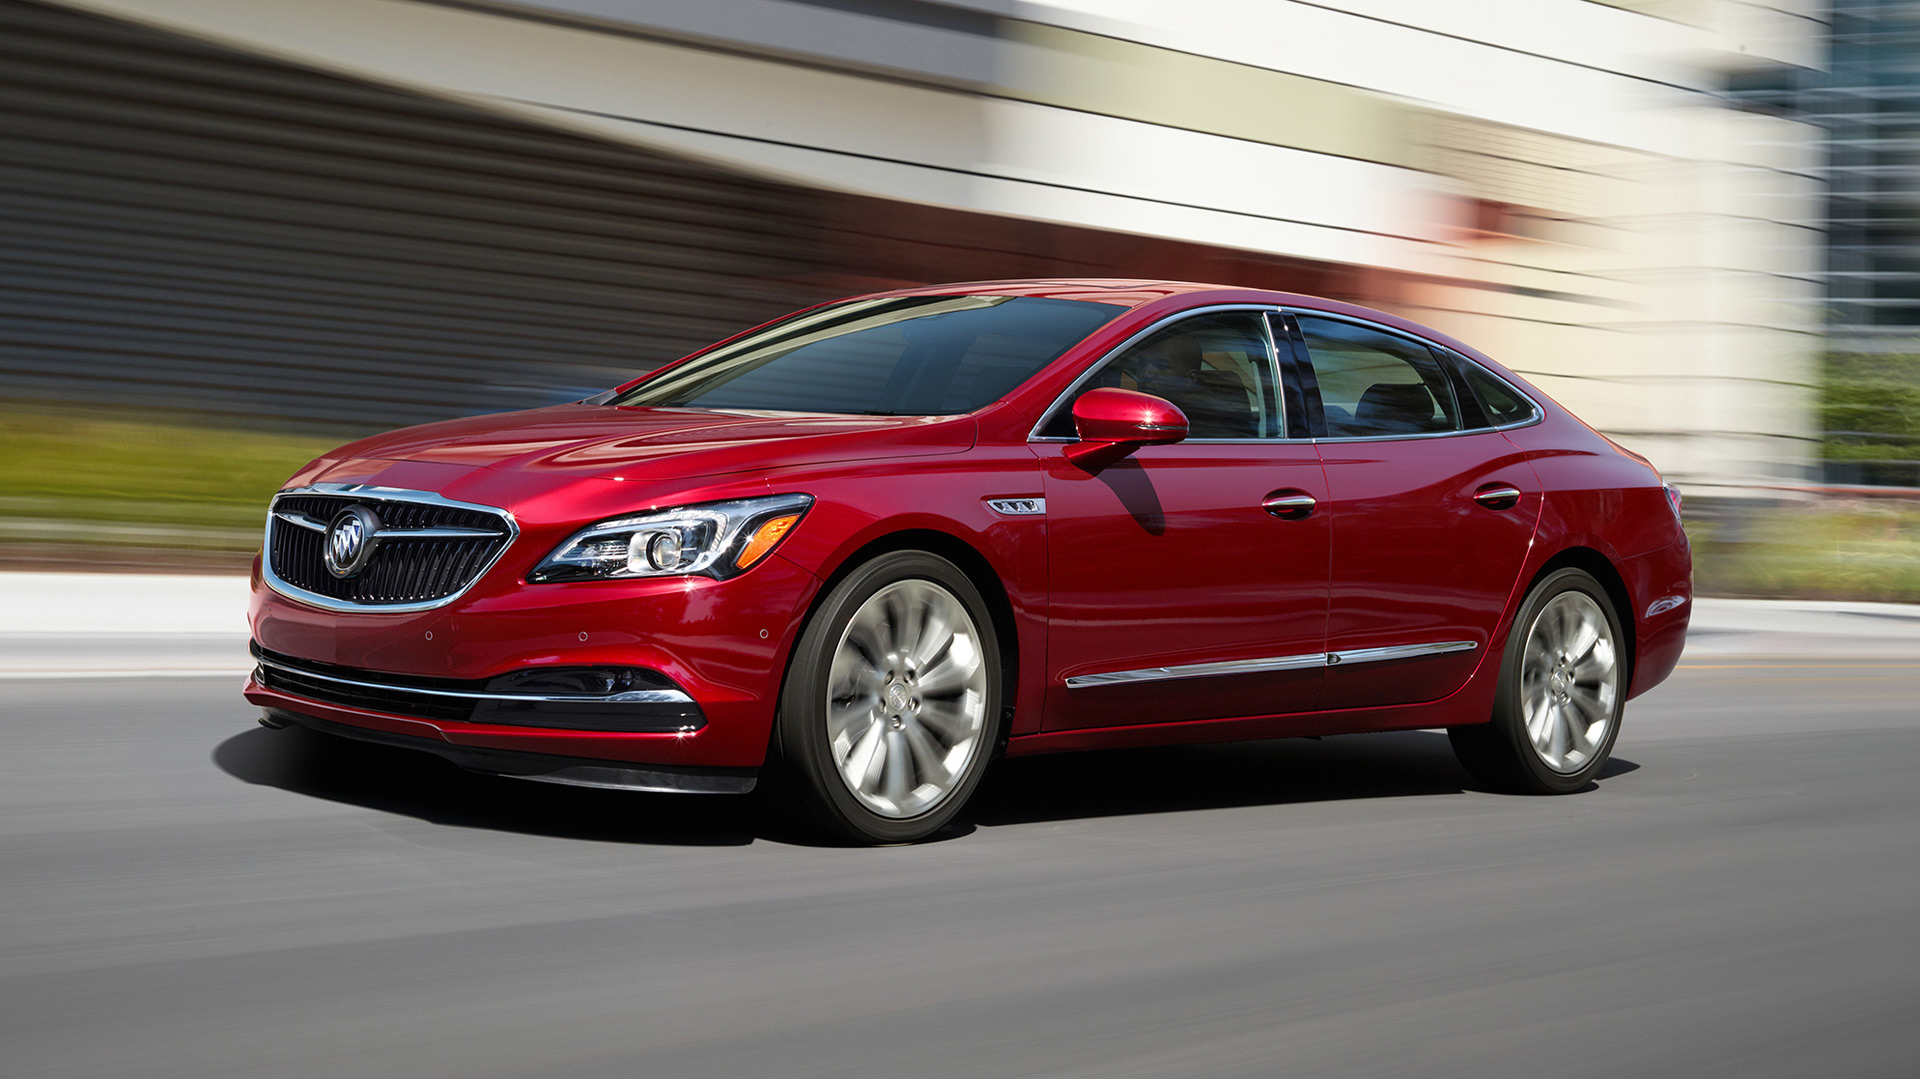 2018 Buick Lacrosse Offered With Standard Mild Hybrid